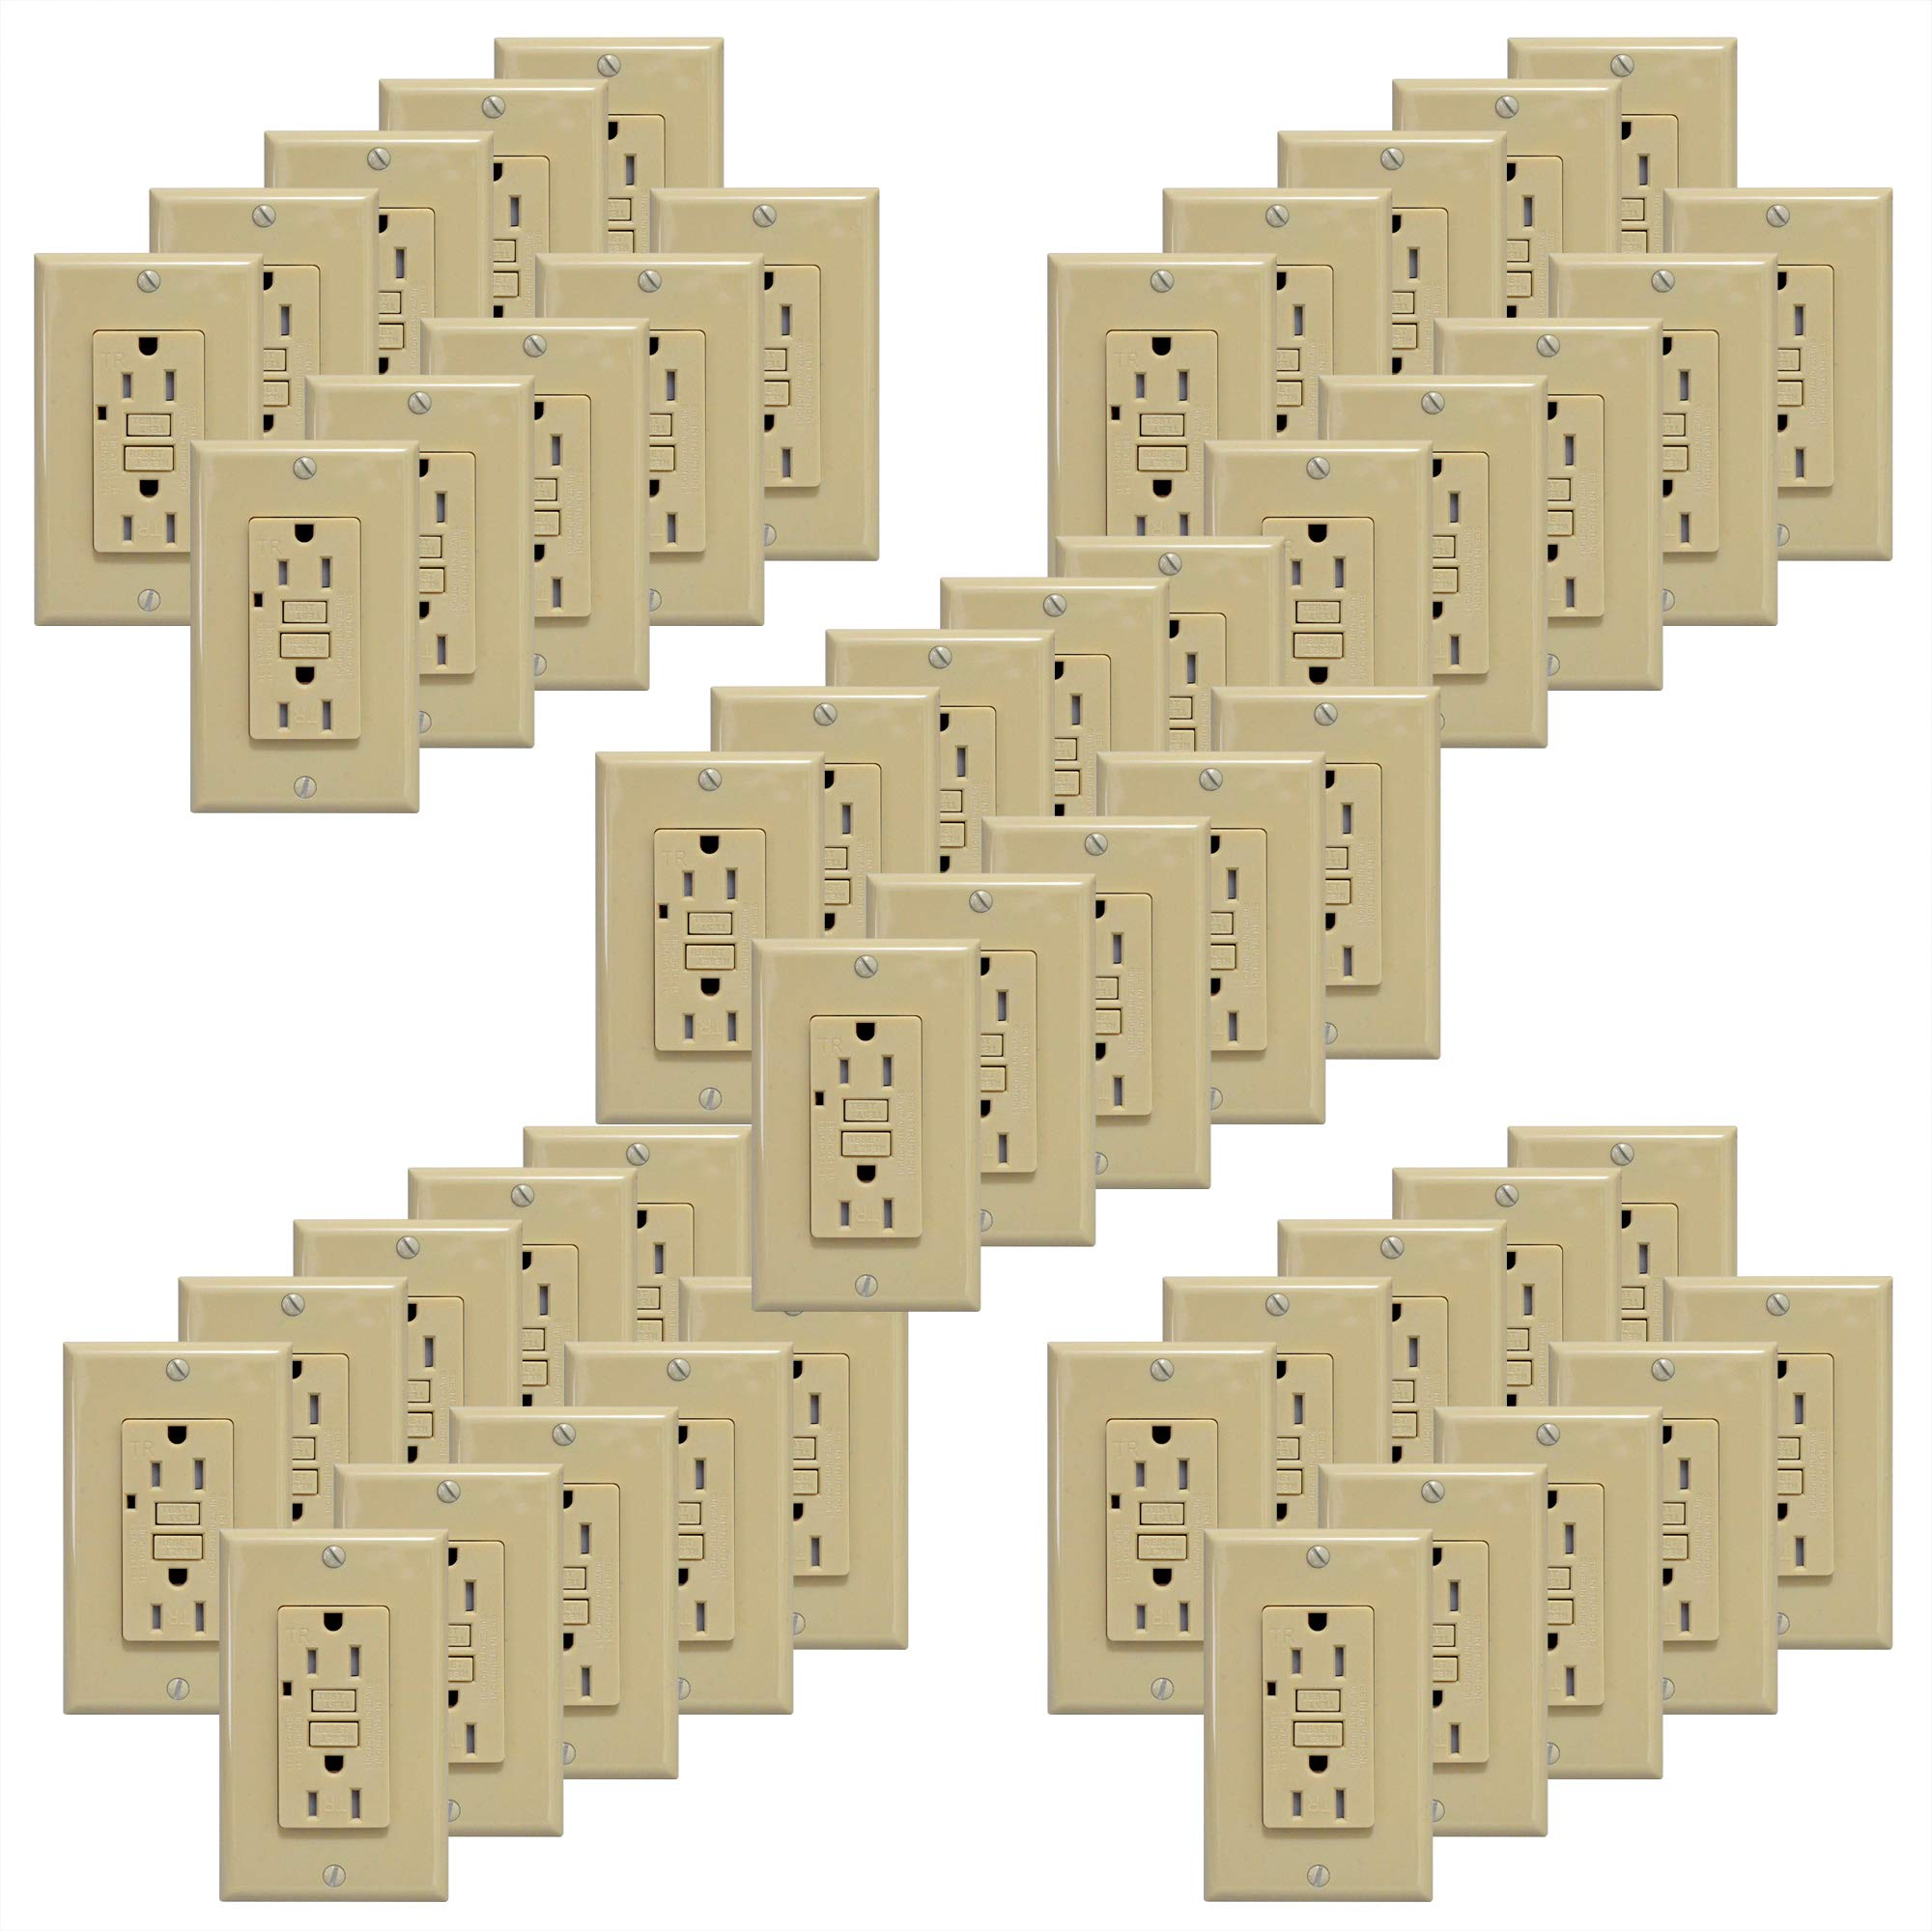 GFCI 15A Tamper Resistant Duplex Receptacle Standard Decorative Outlet with LED Indicator, Ground Fault Circuit Interrupter, Decorative Wallplate, Safelock Protection, UL Listed, Ivory (50-Pack)